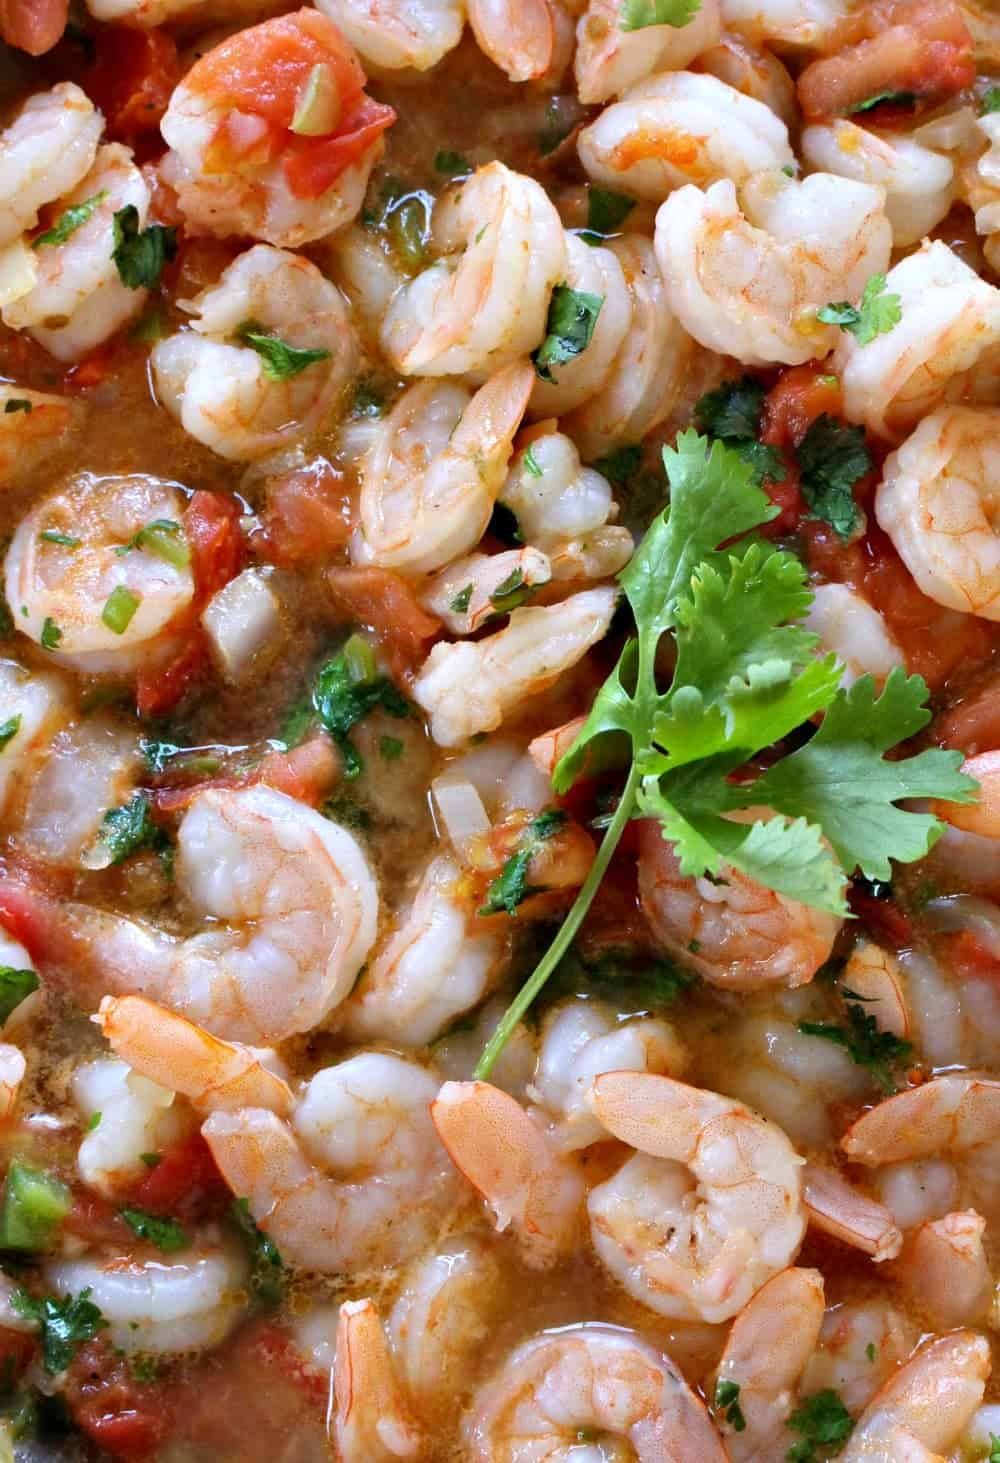 Camarones Rancheros or Ranch-Style Shrimp with cilantro